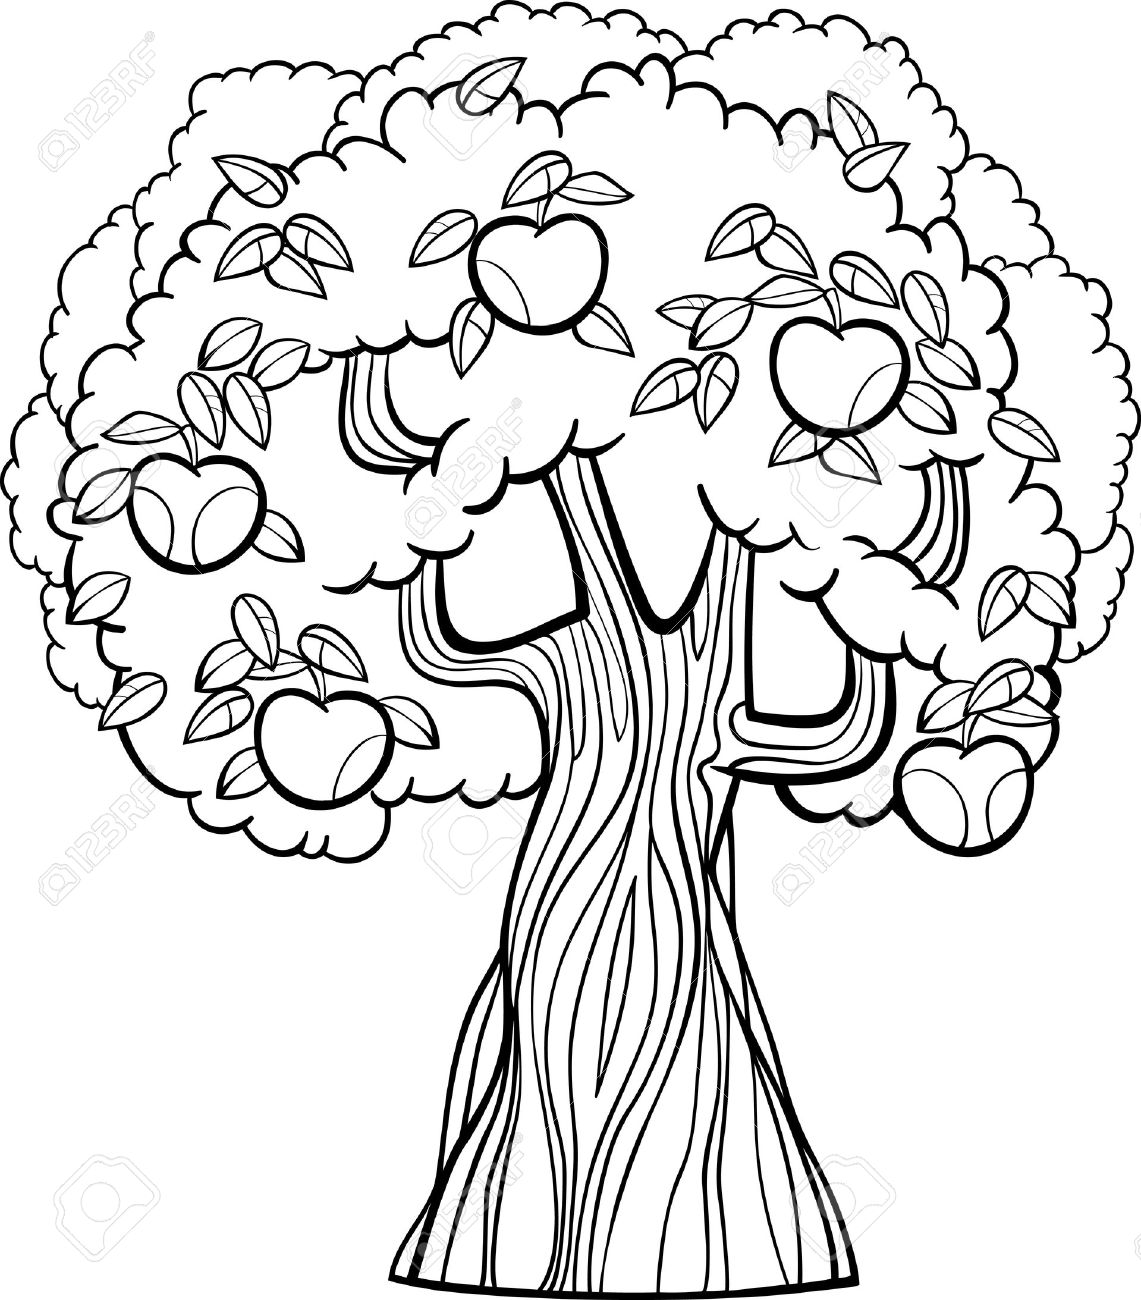 Black And White Cartoon Illustration Of Apple Tree With Apples